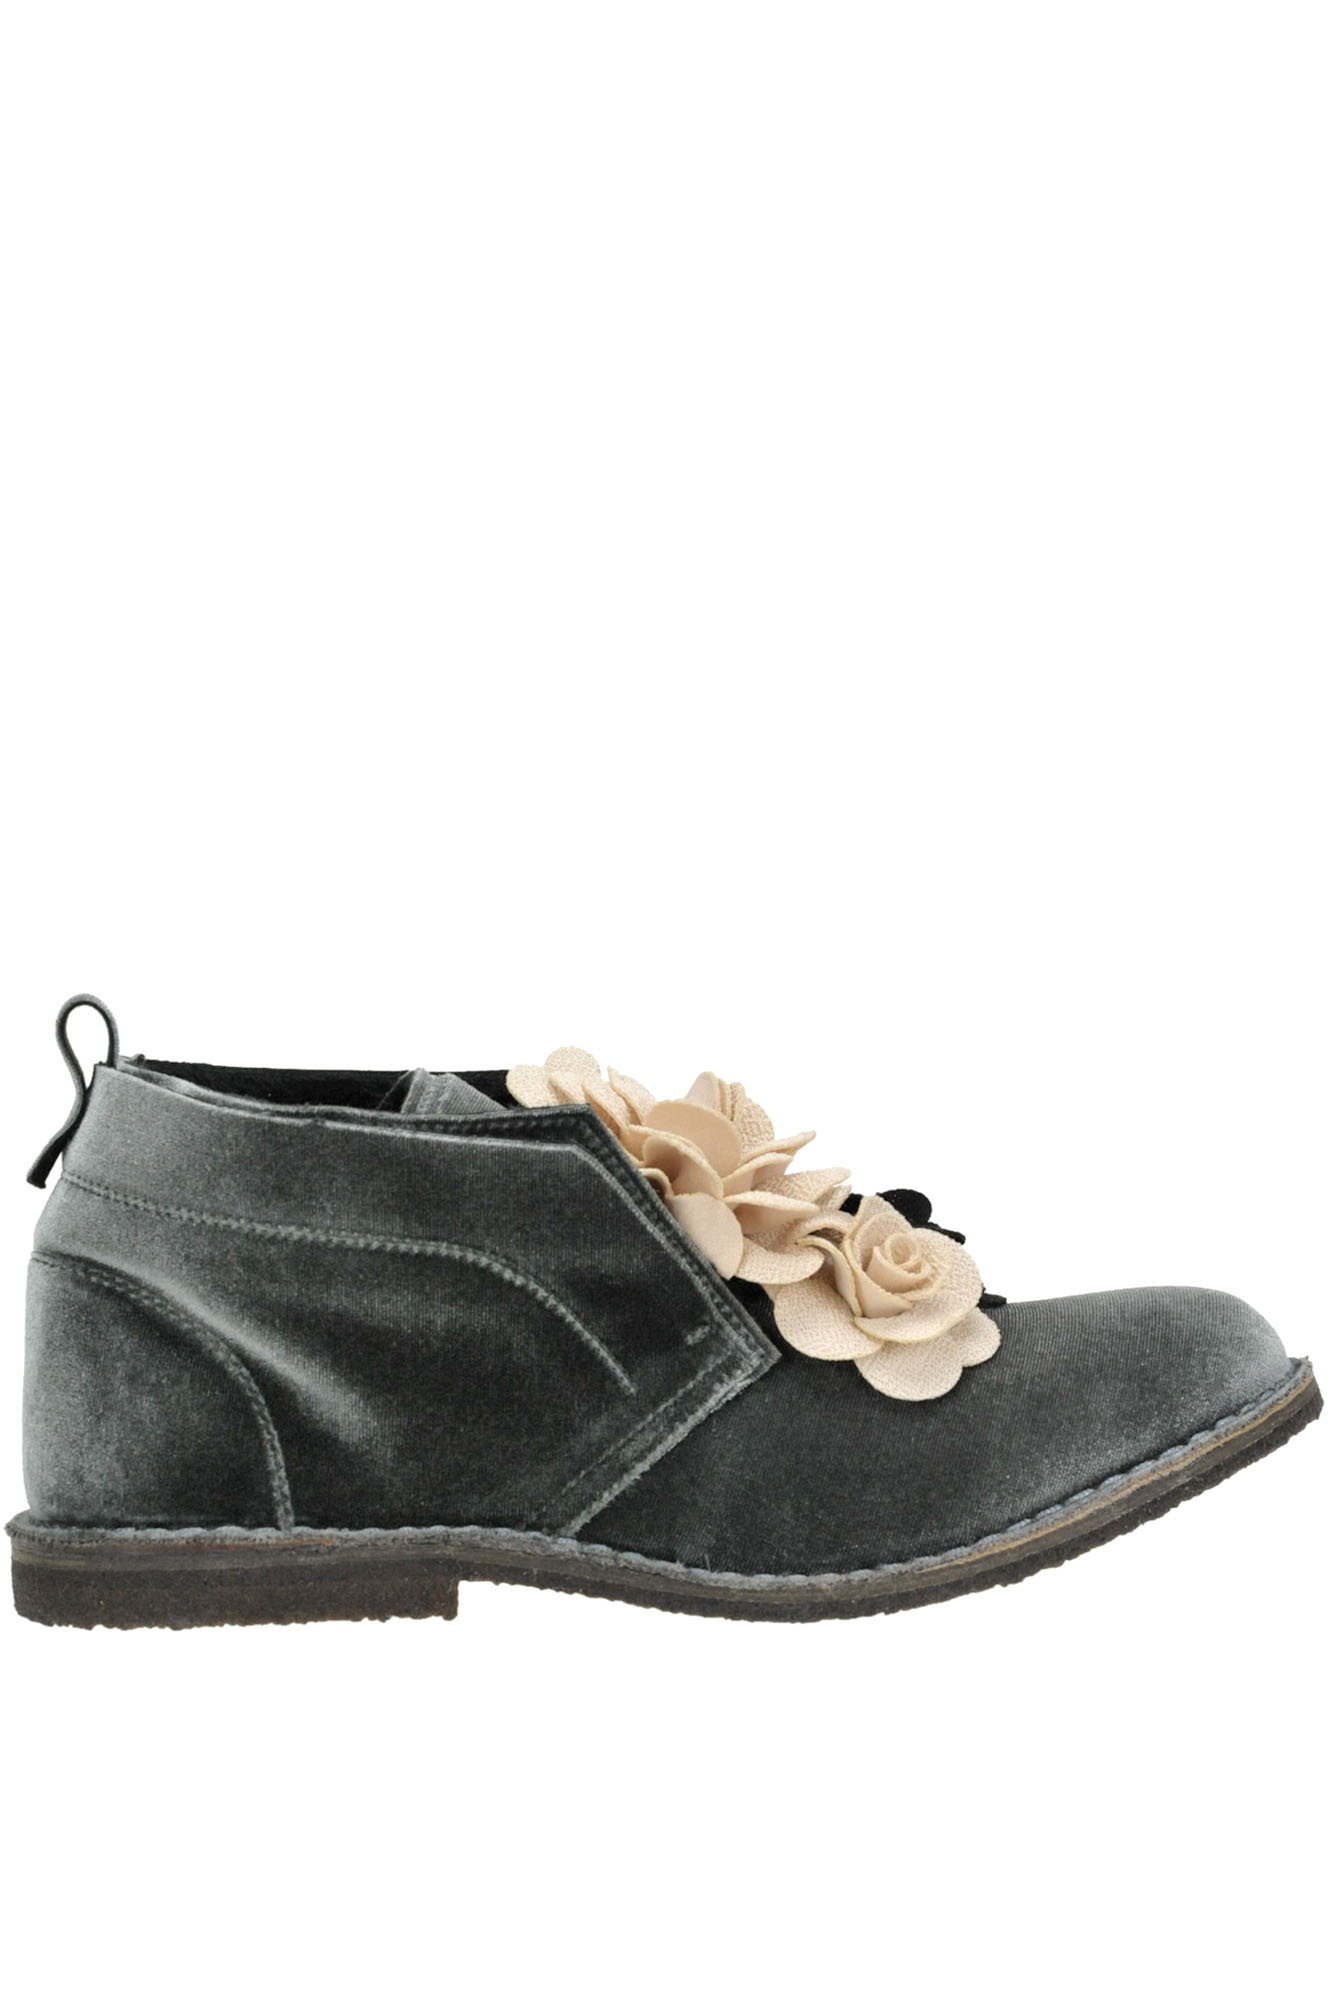 POKEMAOKE Flower Applications Velvet Shoes in Grey